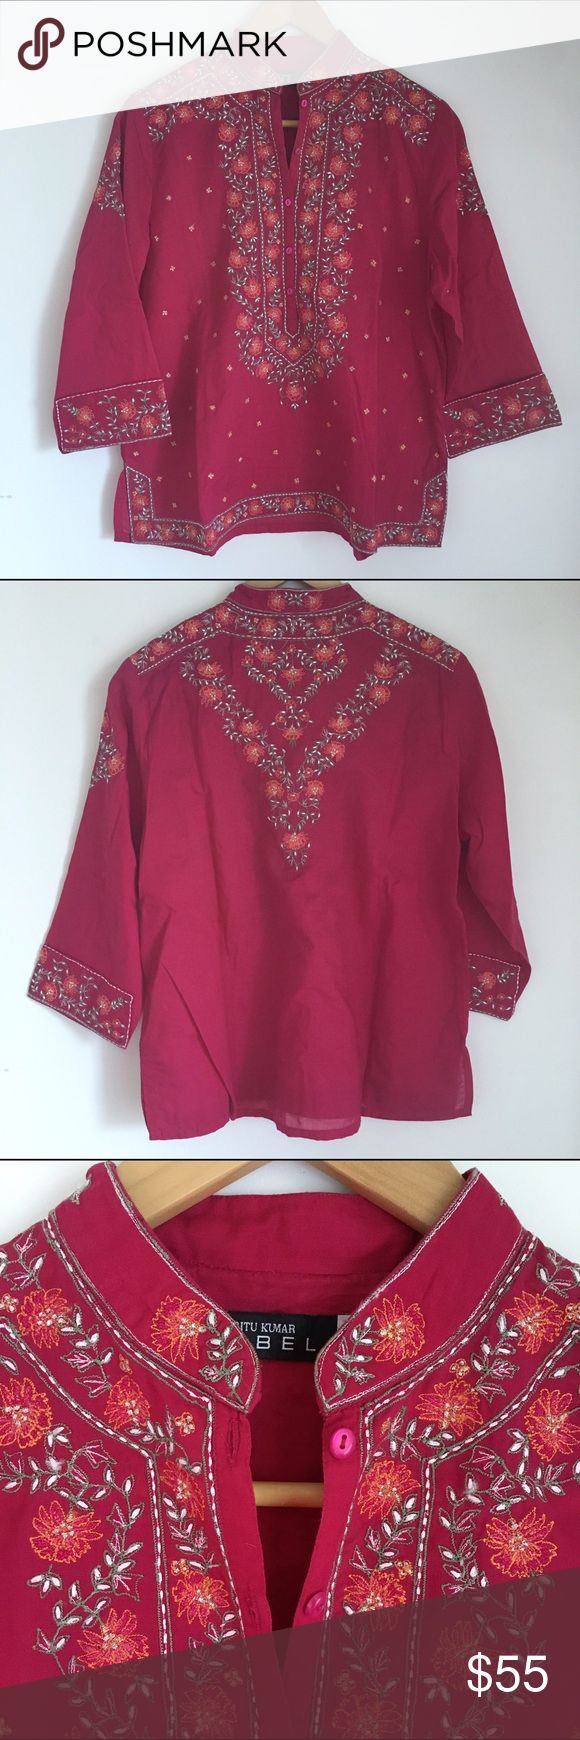 "Designer tunic NWOT never worn. High quality, embroidered. Was a gift from India but didn't fit me.  Popular modern Indian designer. Magenta red color.  Armpit to cuff 12.5"", shoulder seam to cuff 18.5"", shoulder seam to shoulder seam 16"", armpit to armpit 22"", width at bottom hem 23"", shoulder seam to bottom hem 24"". Ritu Kumar Tops Tunics"